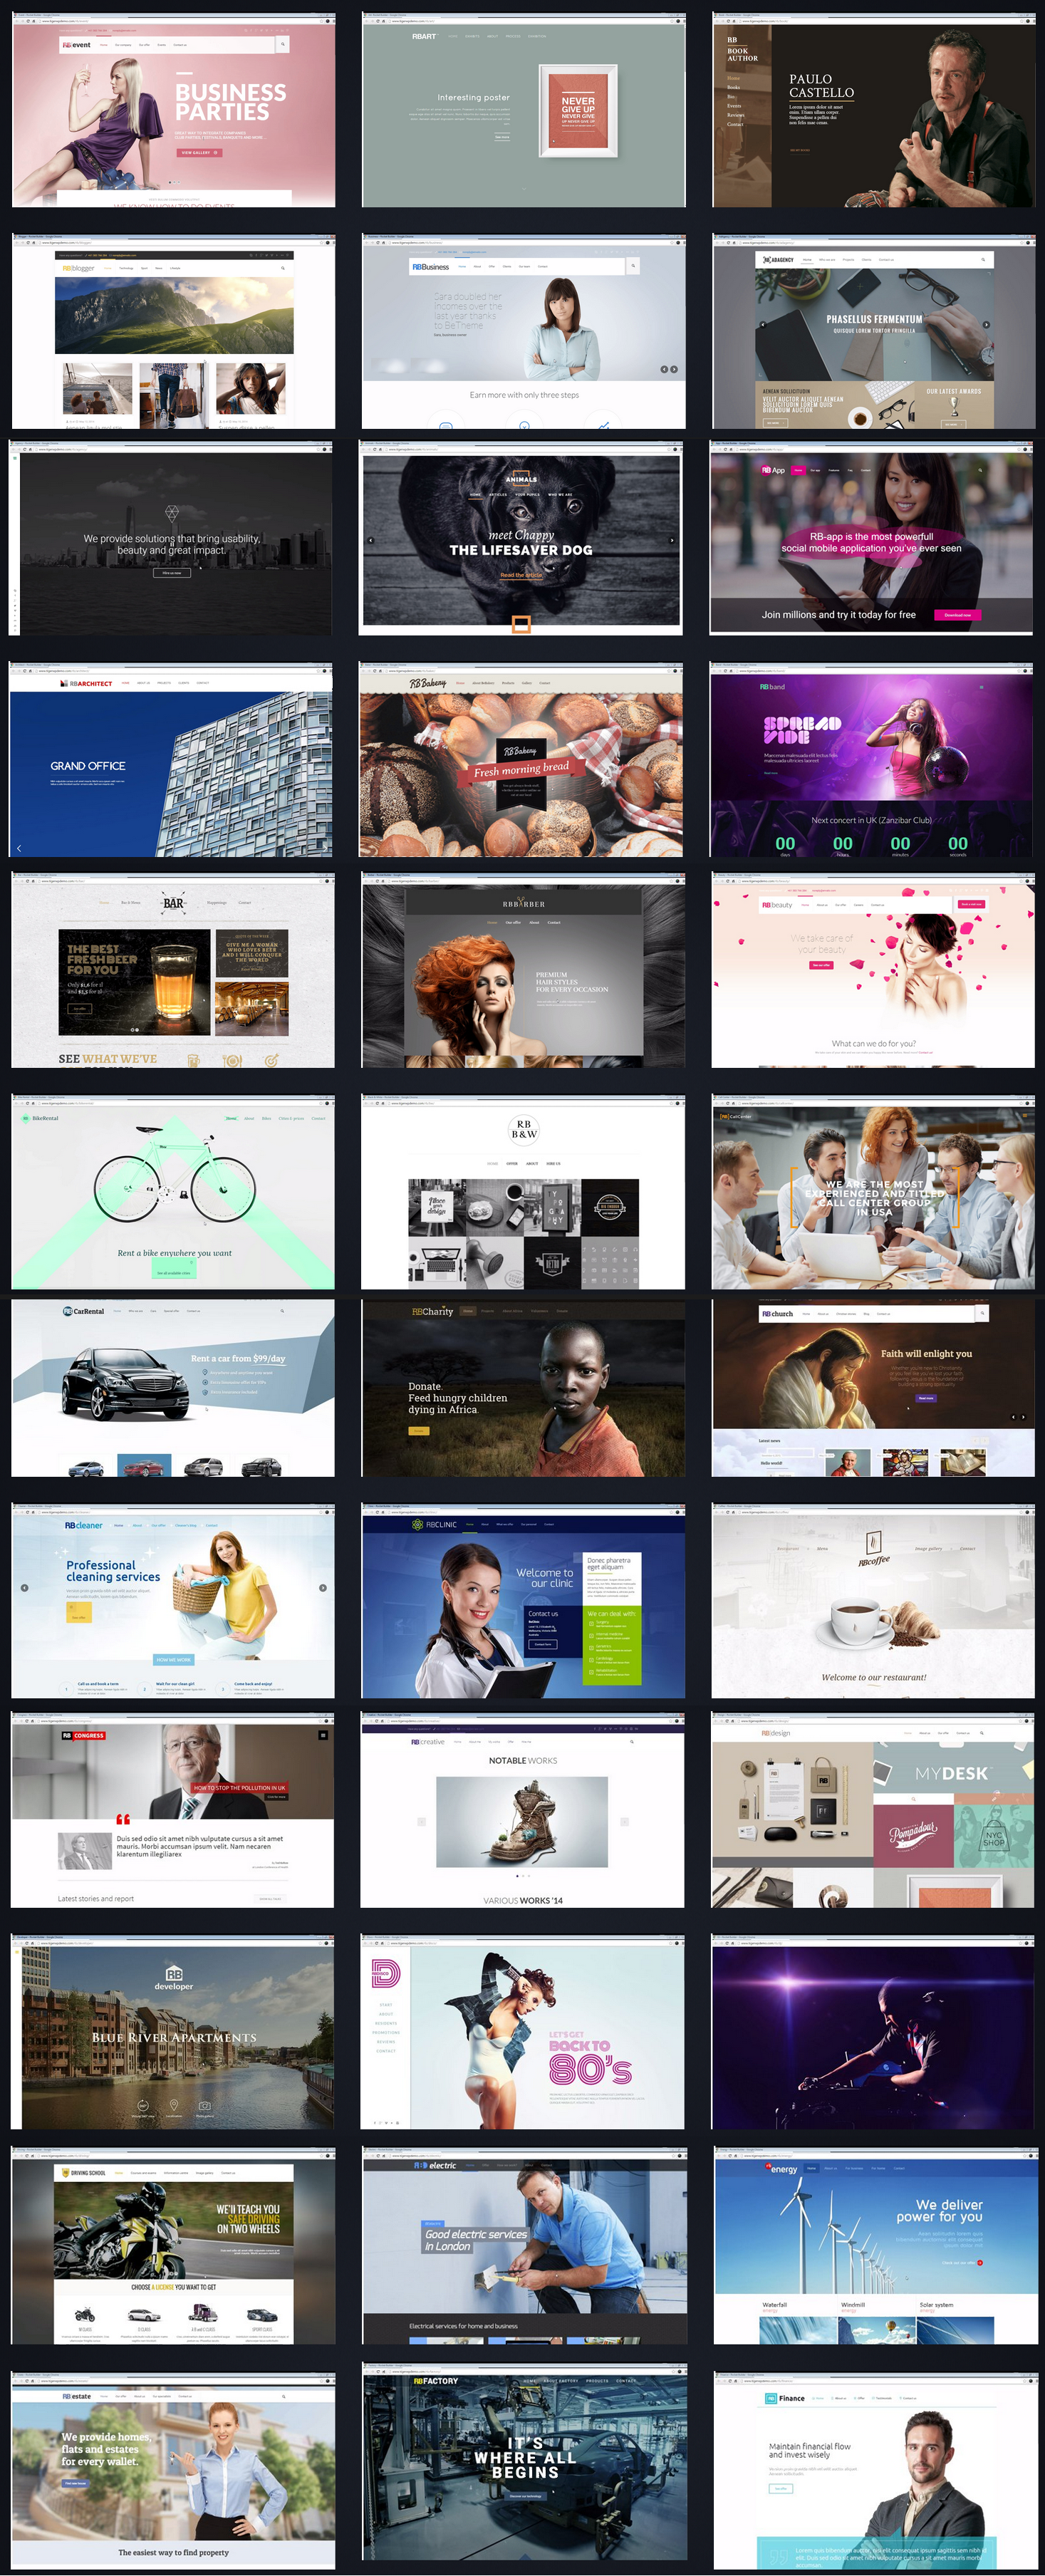 Website Design Services in Dayton Ohio by Online Business Marketing Solutions